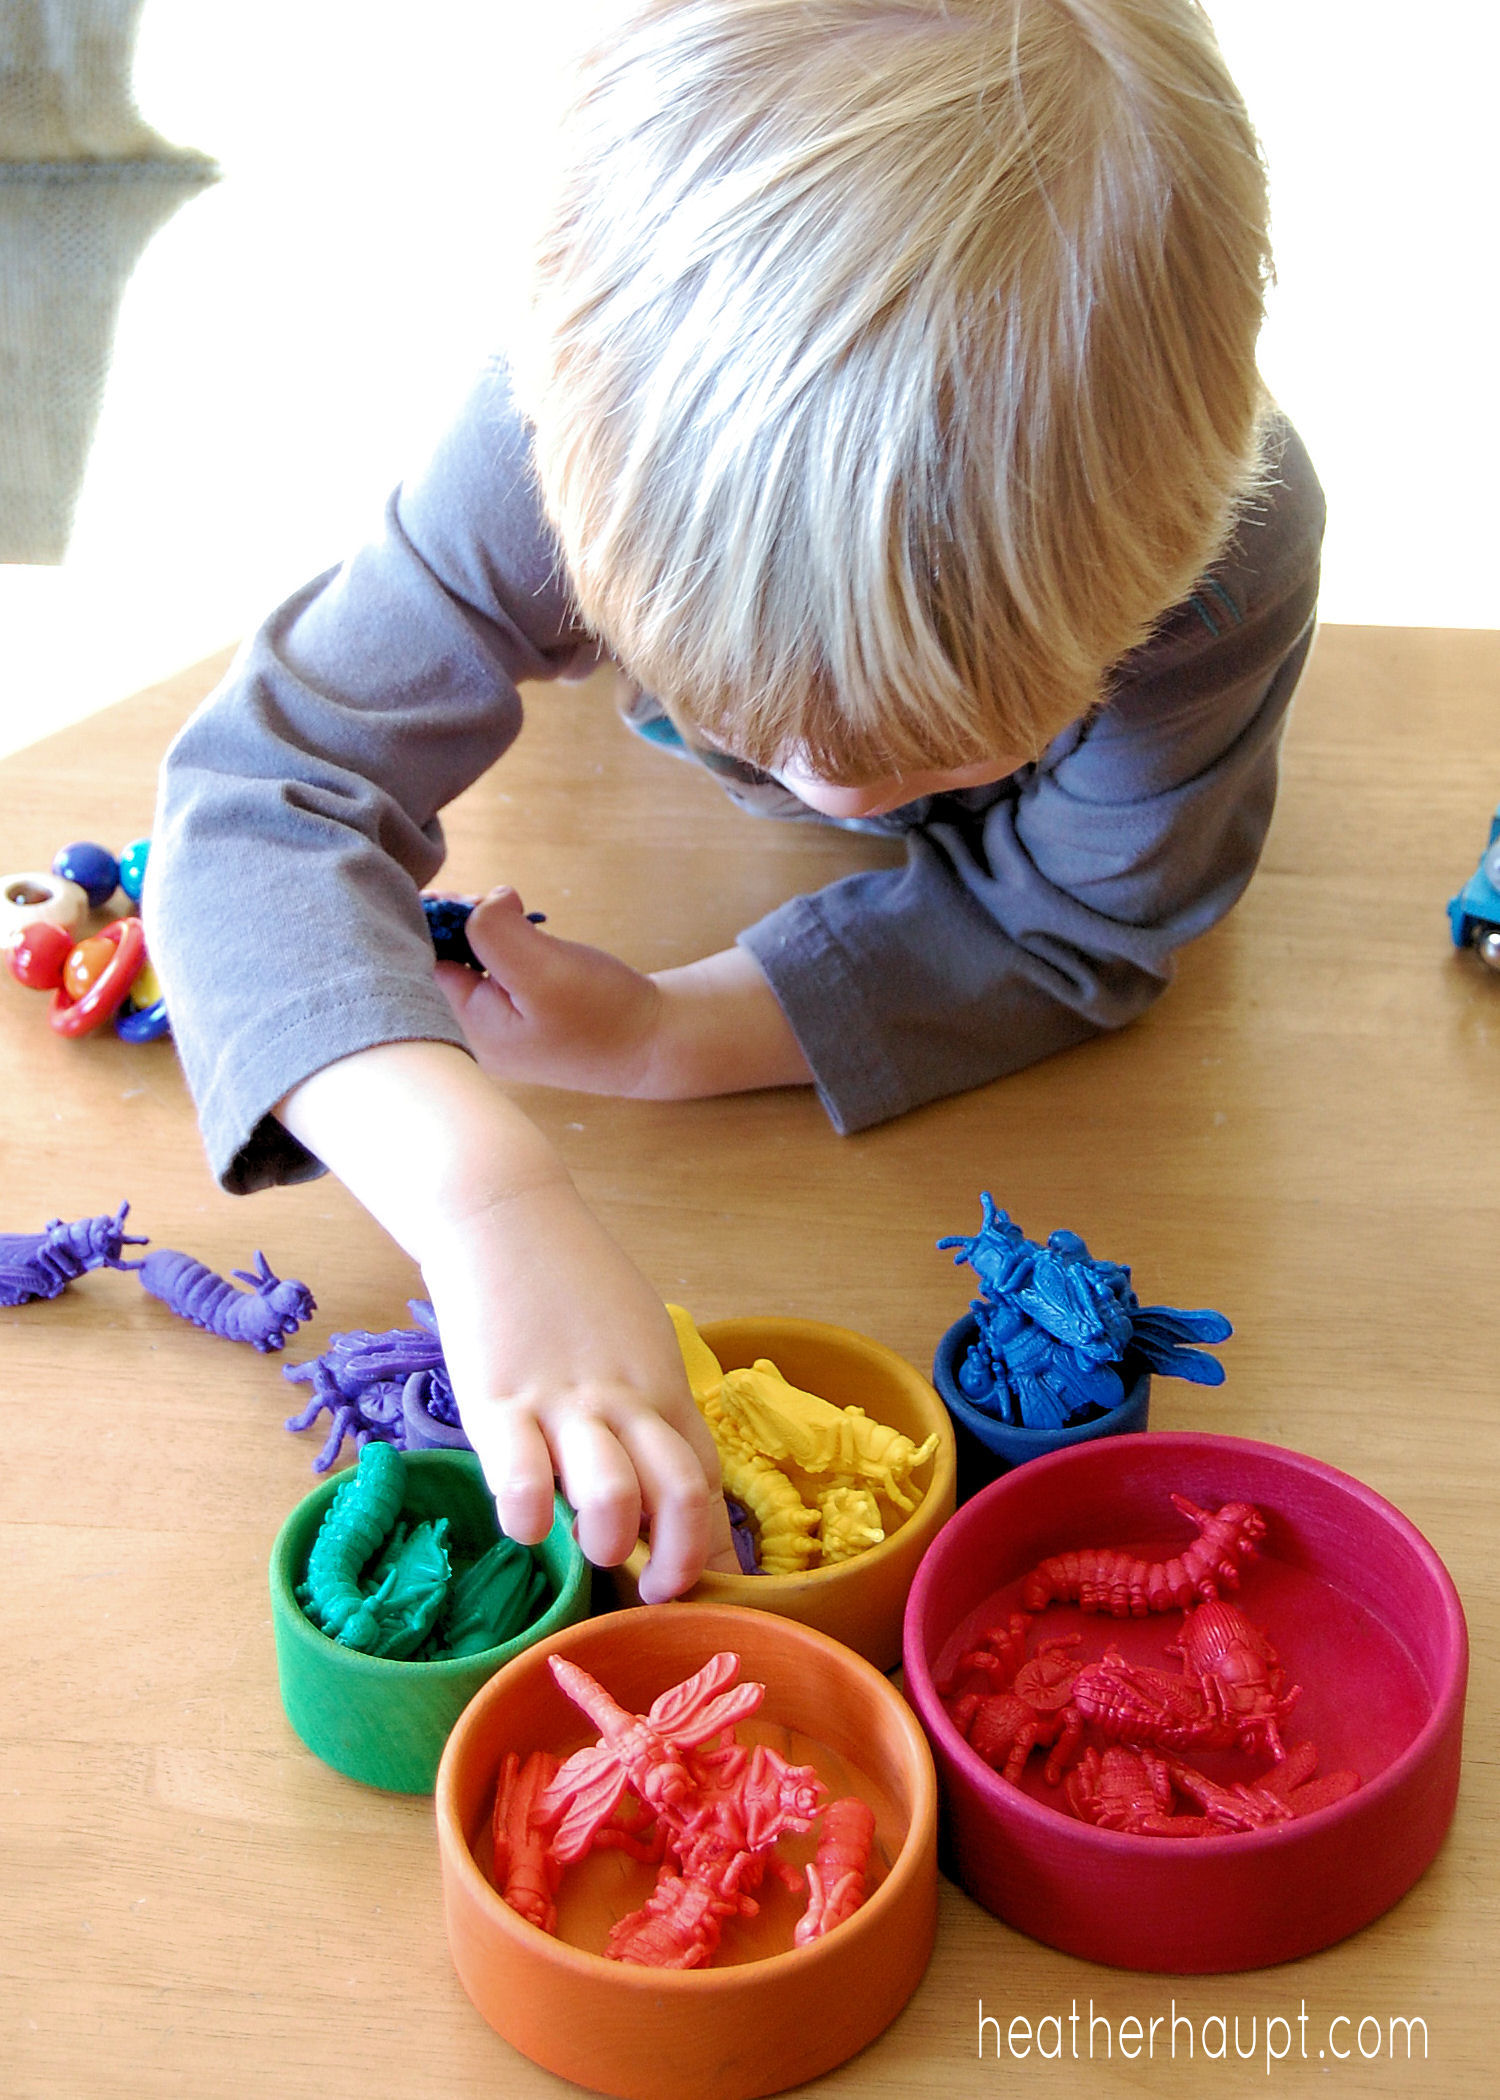 Beautiful wooden bowls and colored bugs are the perfect combo for developing important preschool skills.